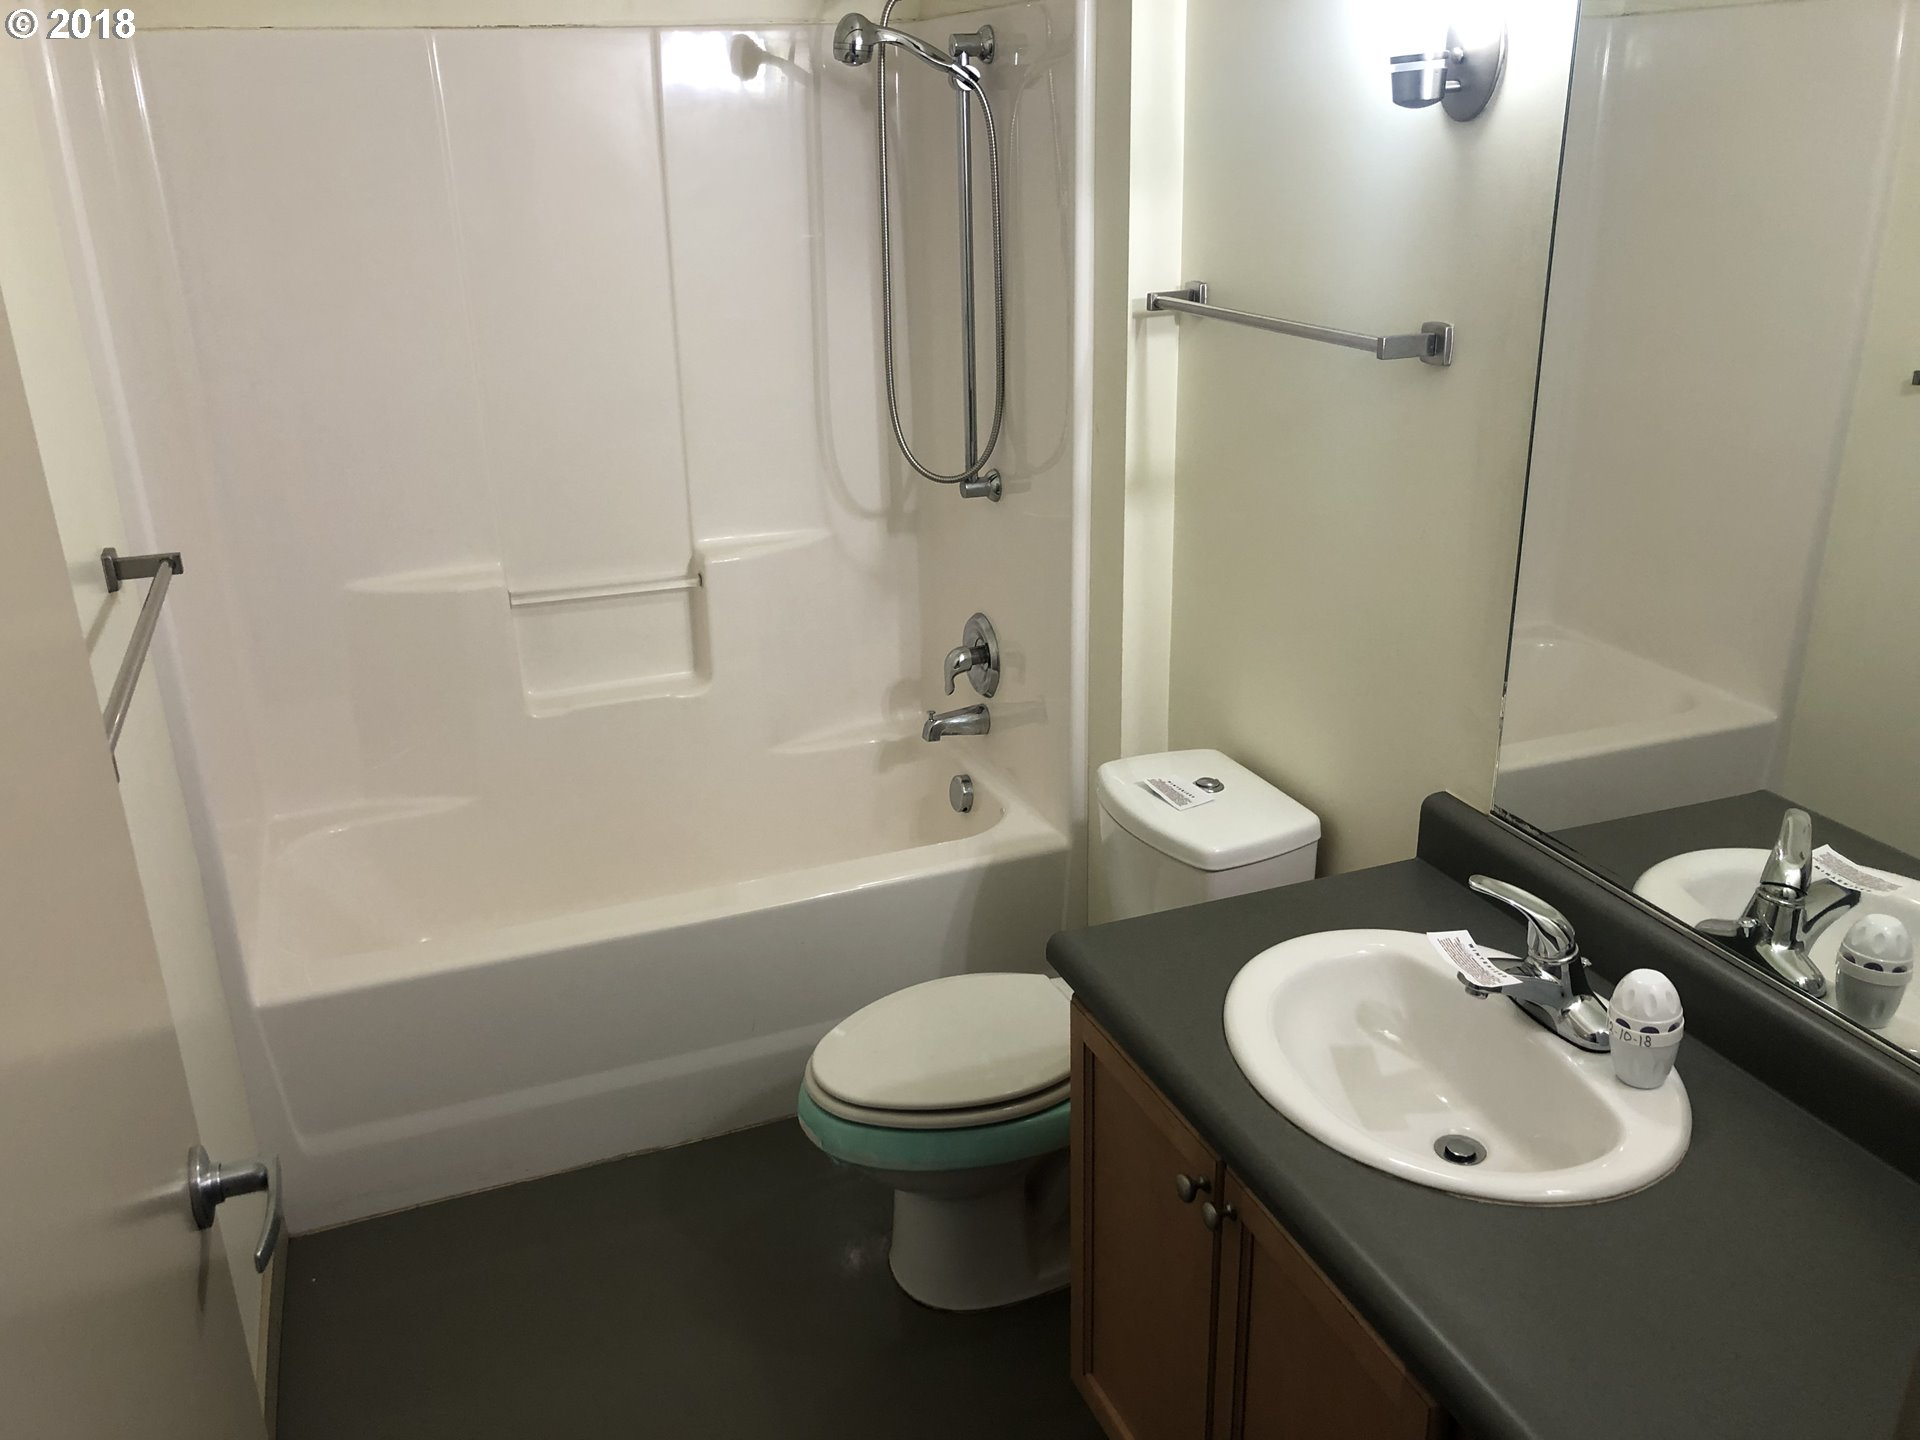 866 sq. ft 2 bedrooms 1 bathrooms  House ,Portland, OR